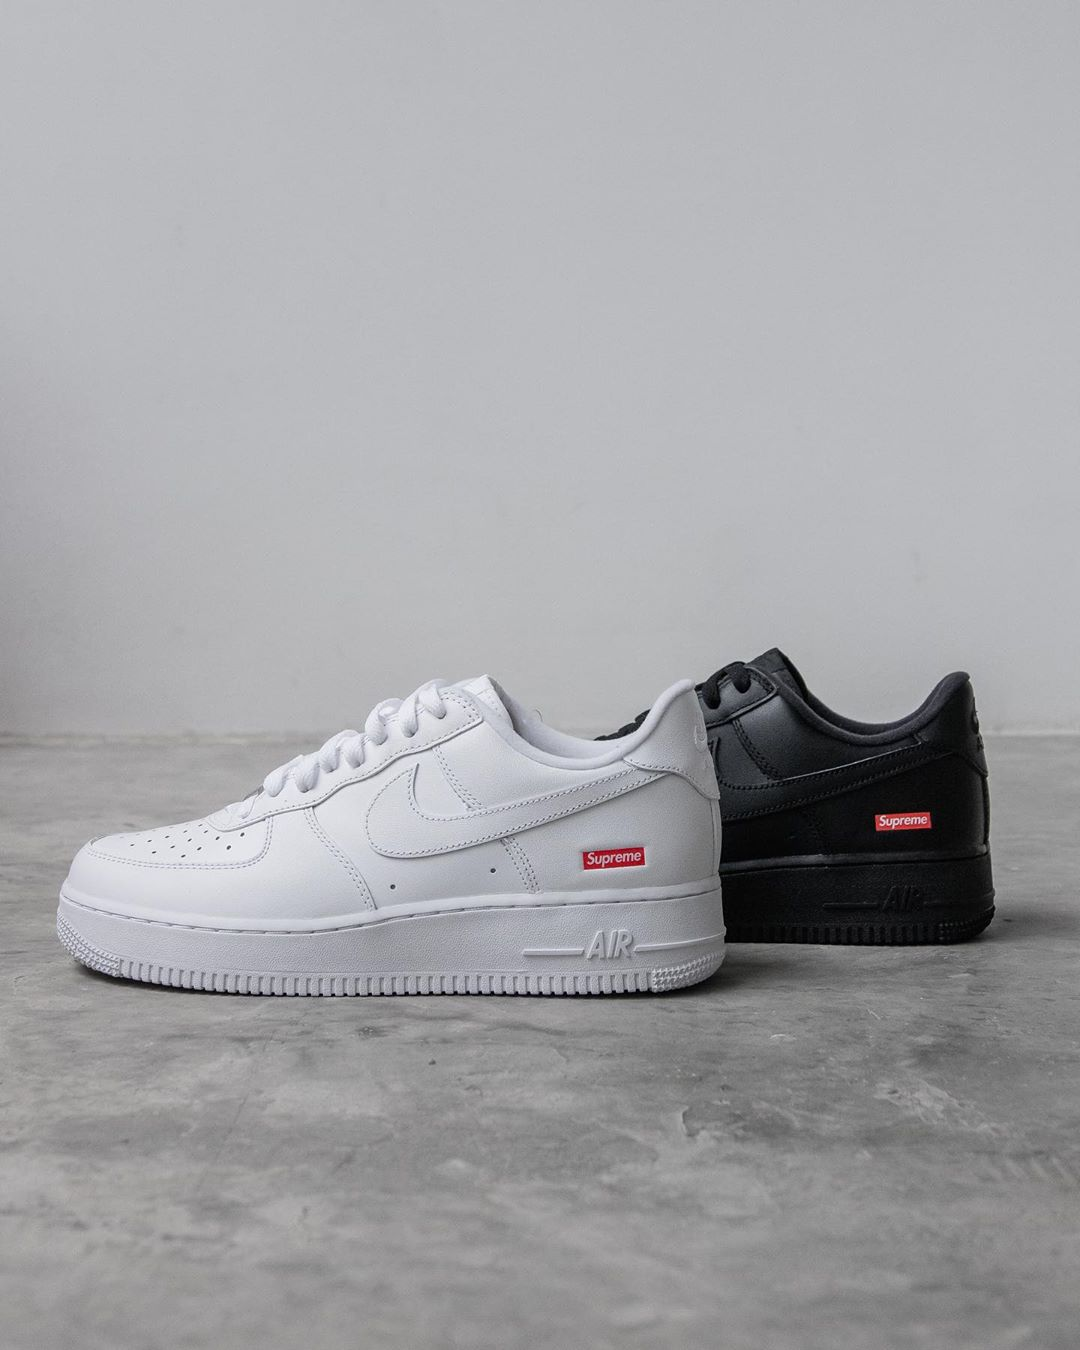 Novelship Supreme x Nike Air Force 1 Low